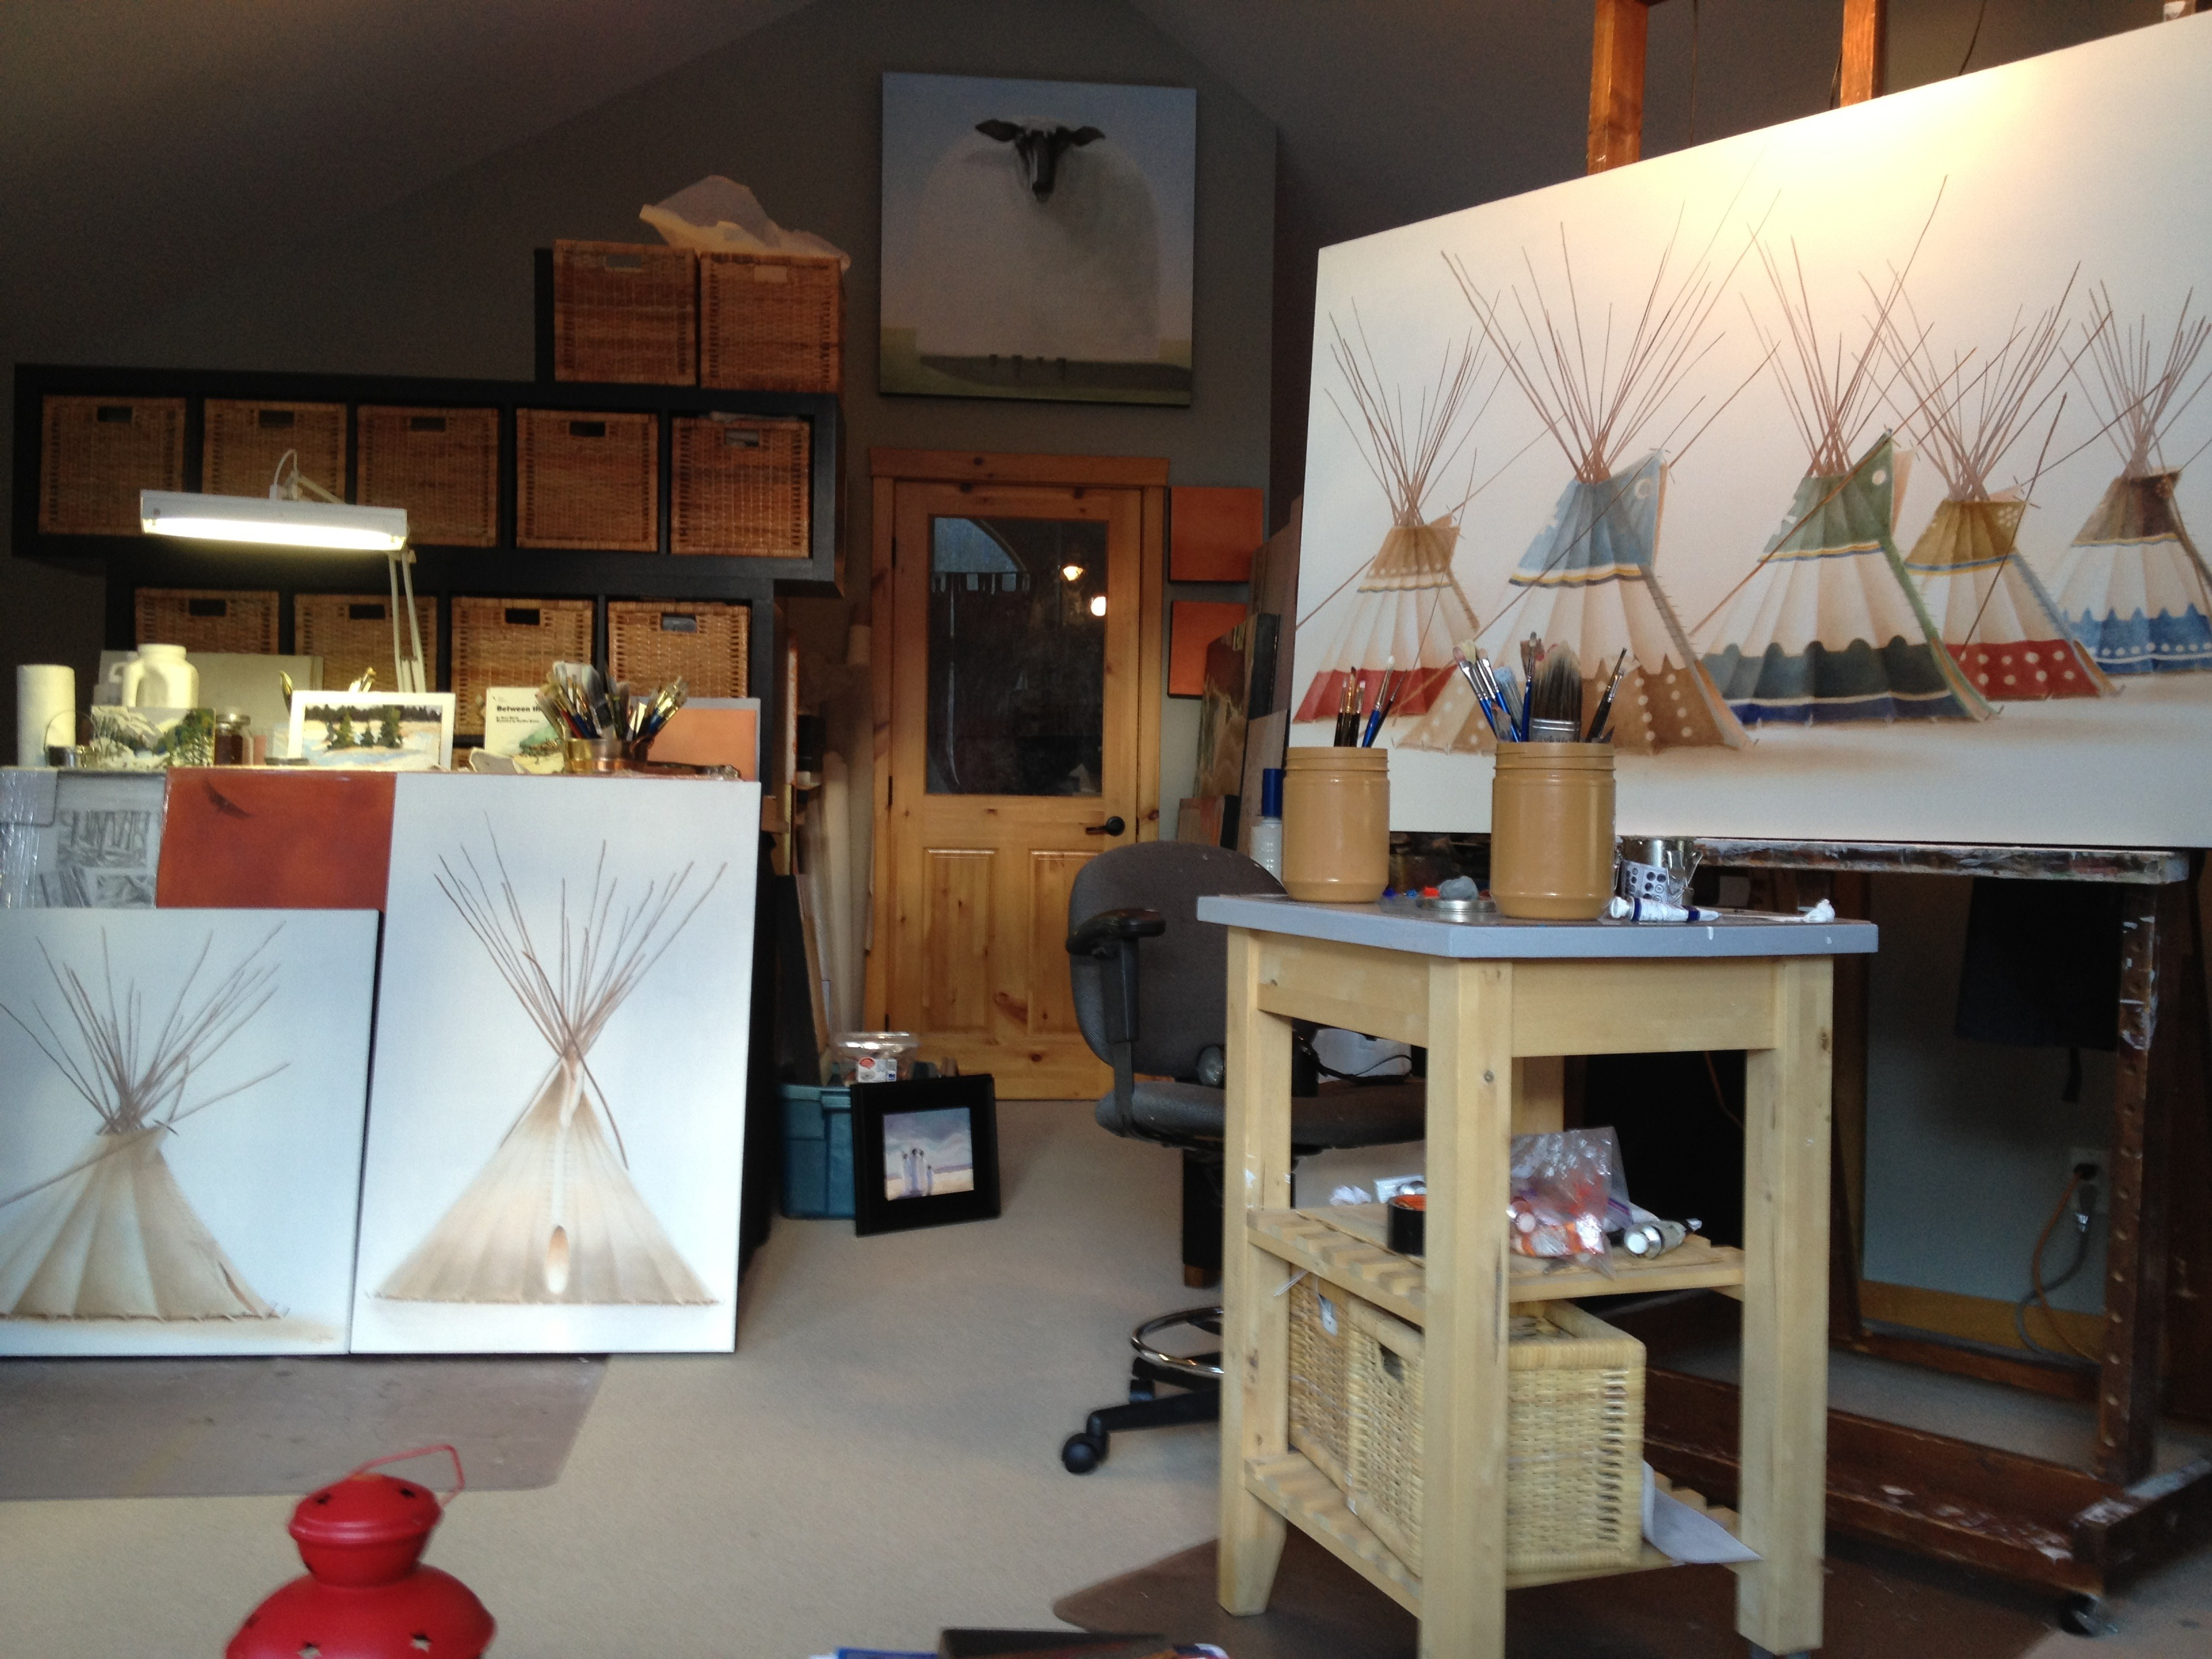 Works in Janice Tanton's studio waiting to be delivered to OAG for CAMP